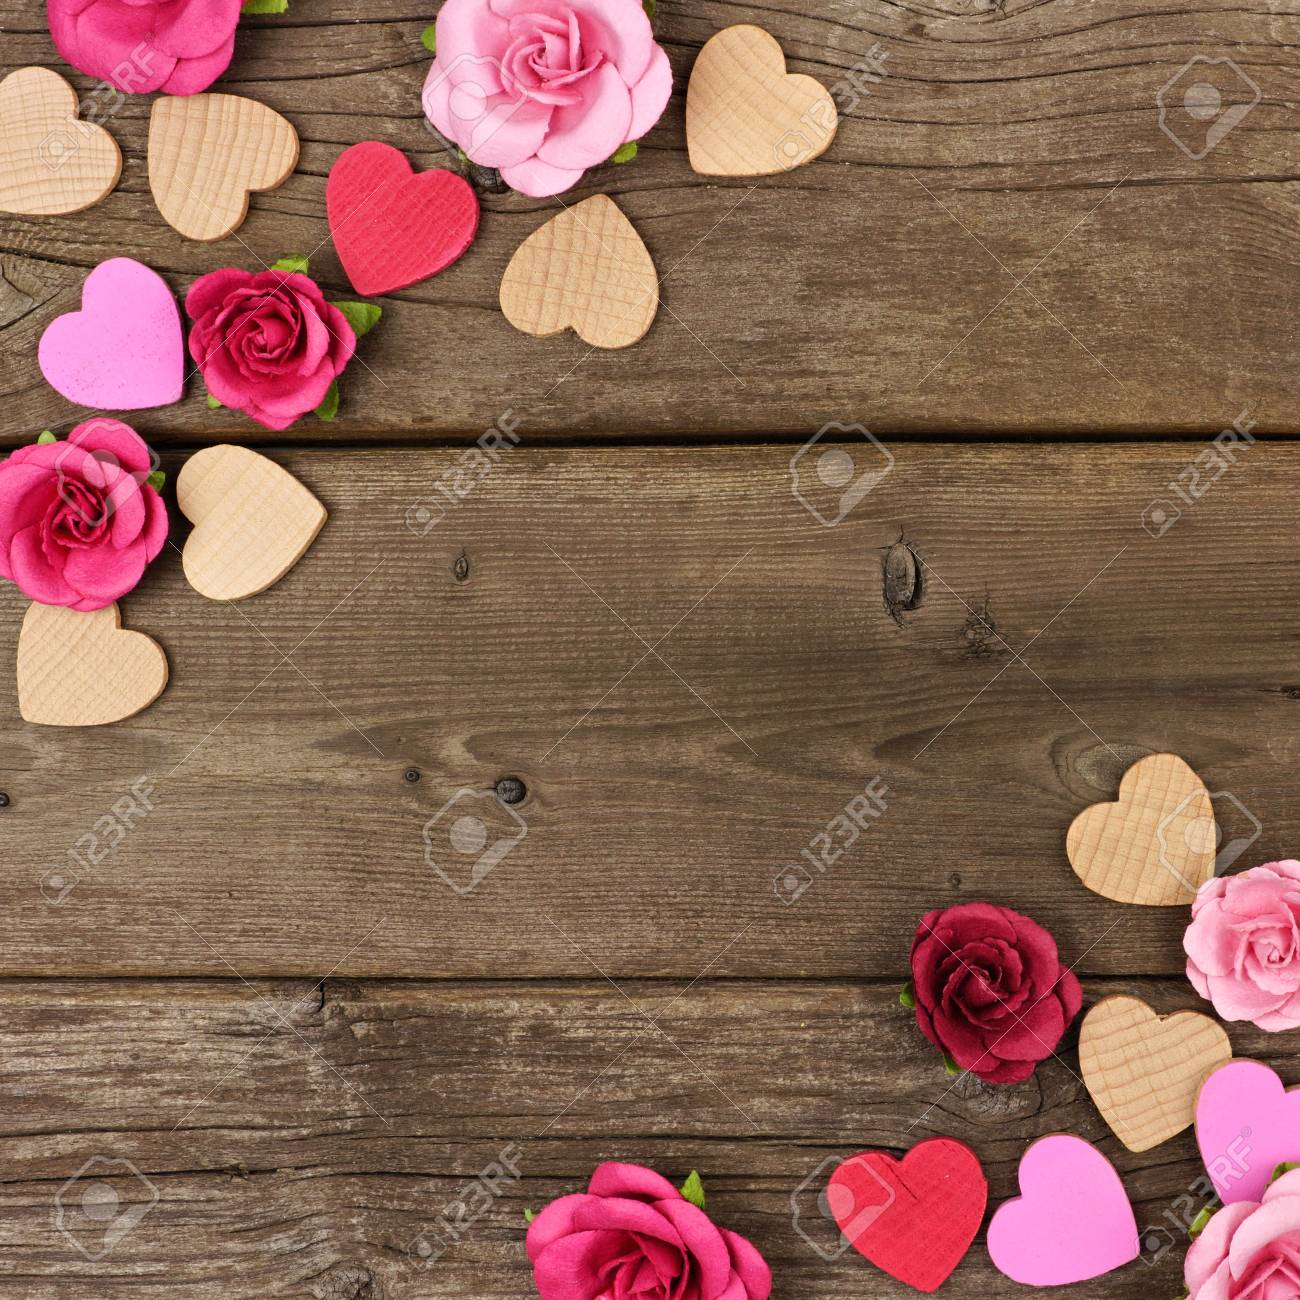 photo valentines day corner frame of wooden hearts and paper roses against a rustic wood background with c